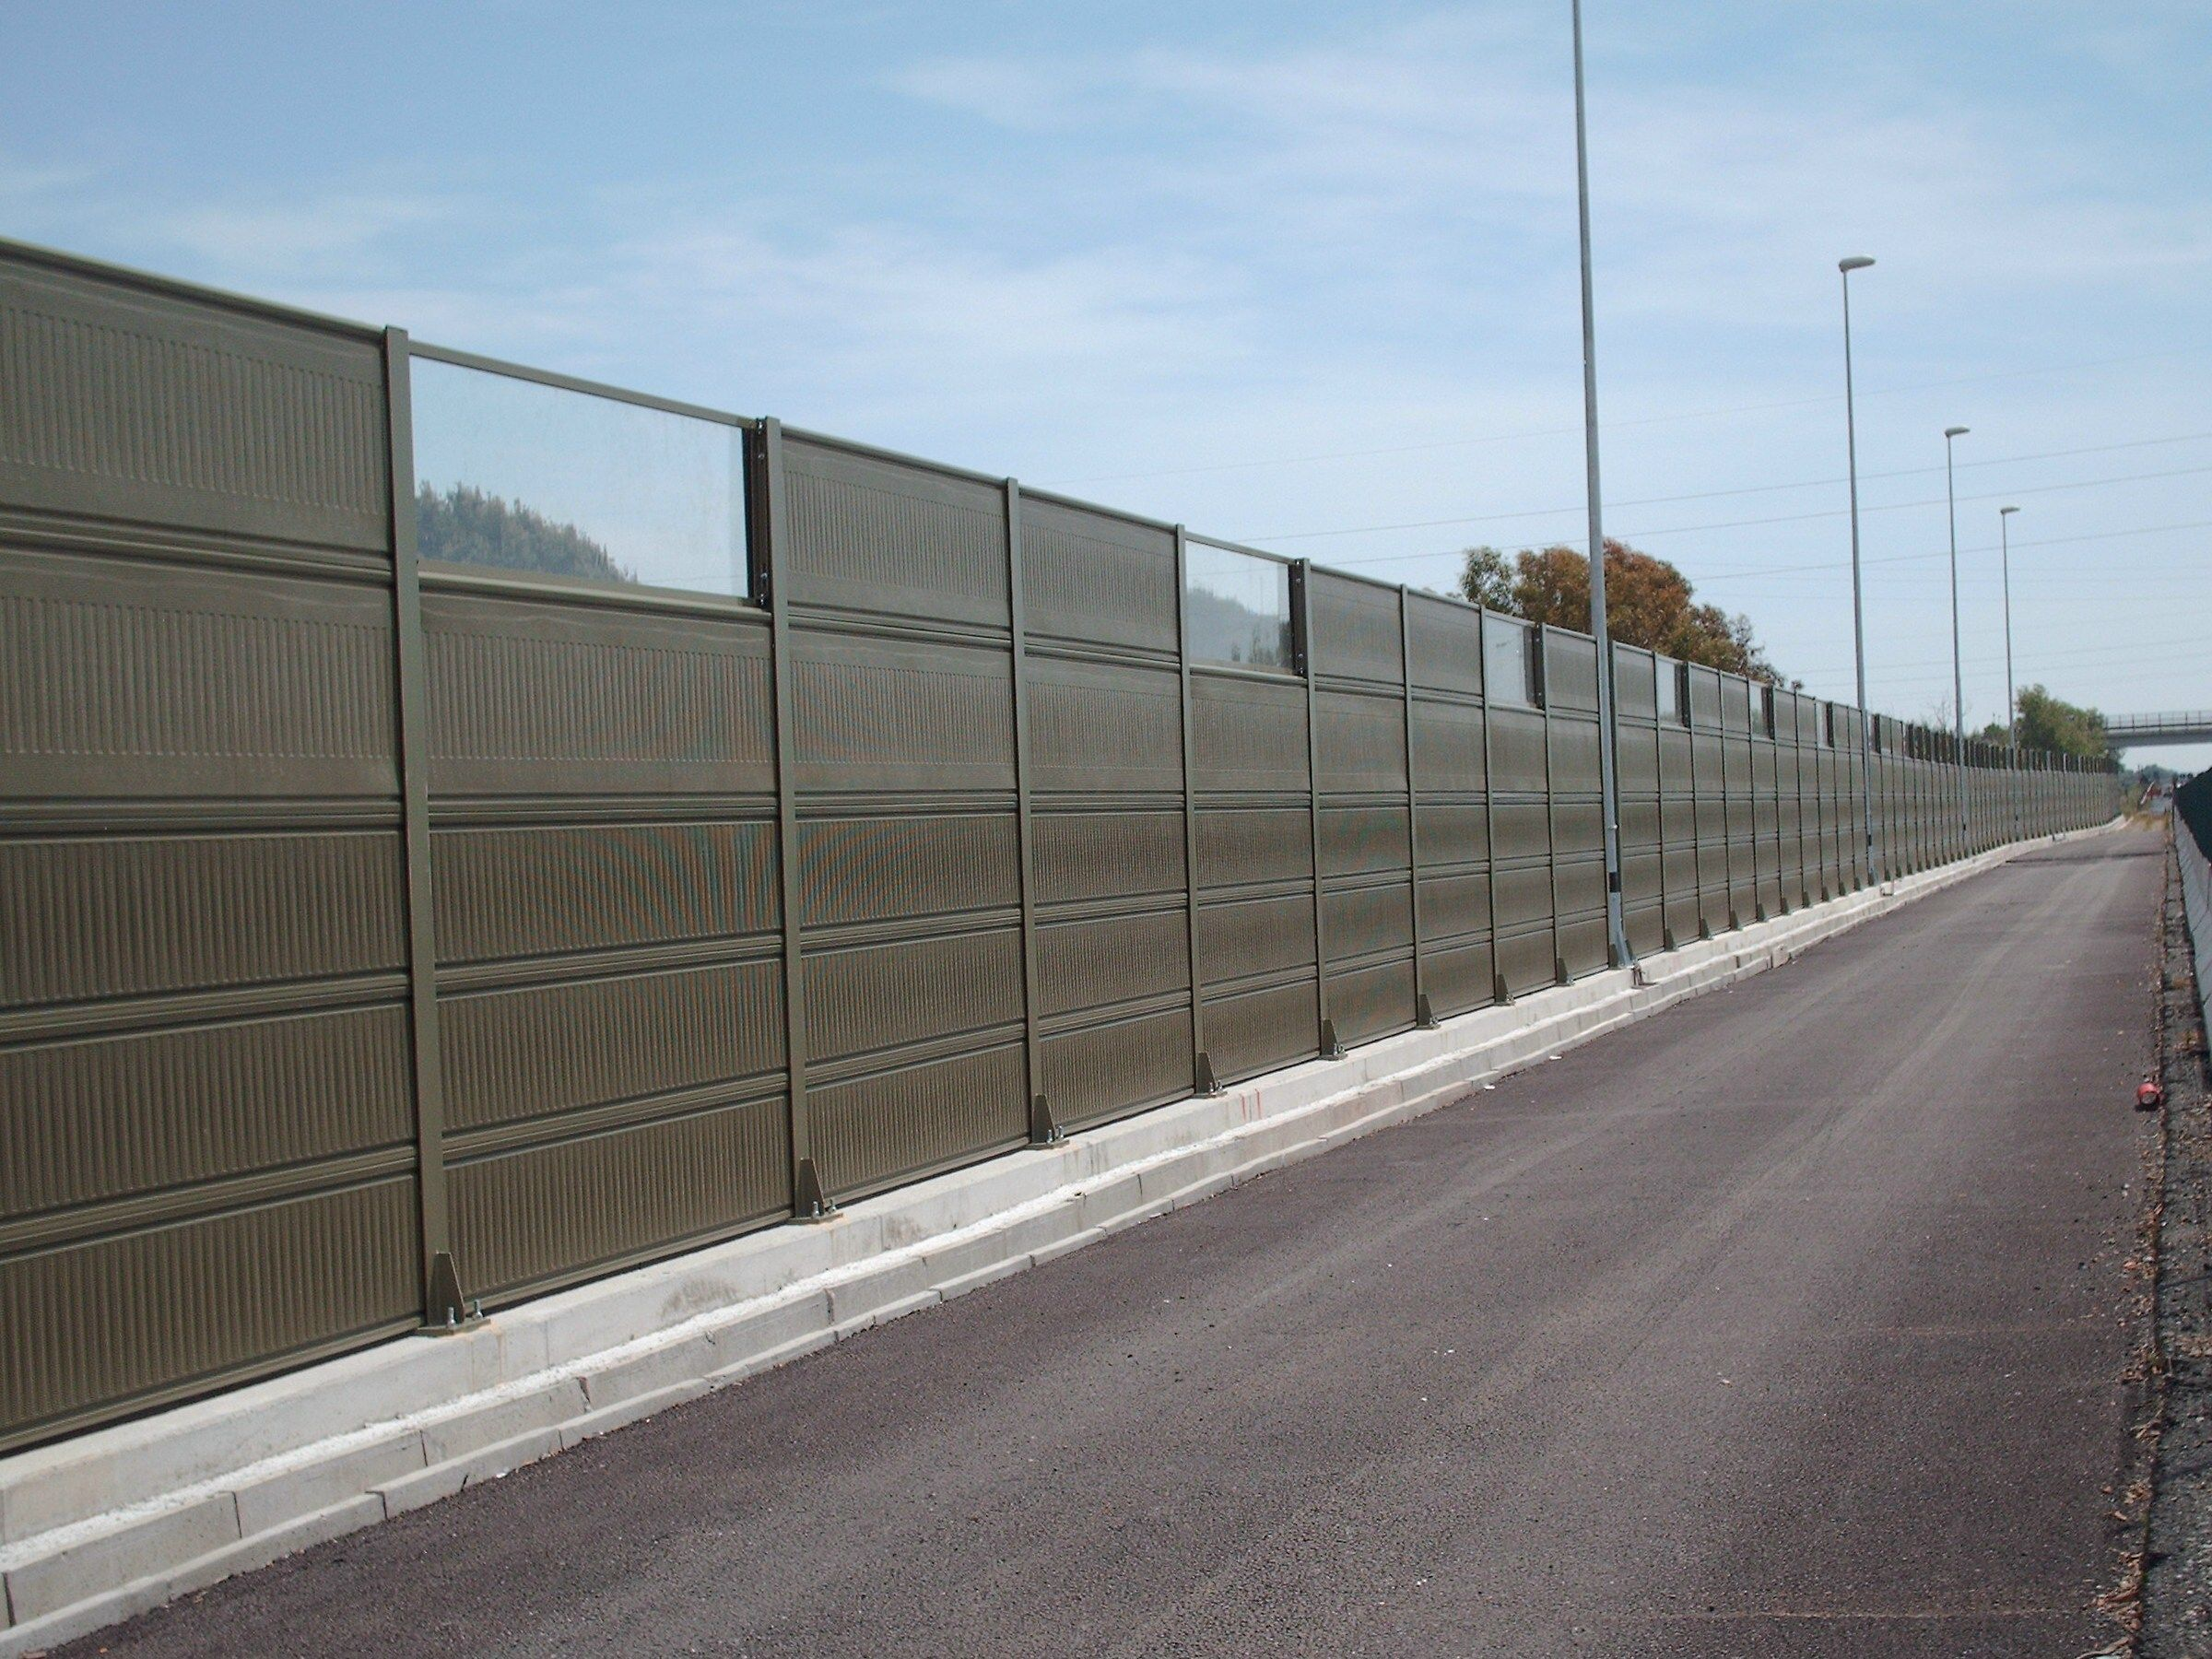 Metallic Noise Barrier Manufacturer And Supplier Http Www Zakacoustics Com Metallic Noise Barrier Noise Barrier Sound Proofing Noise